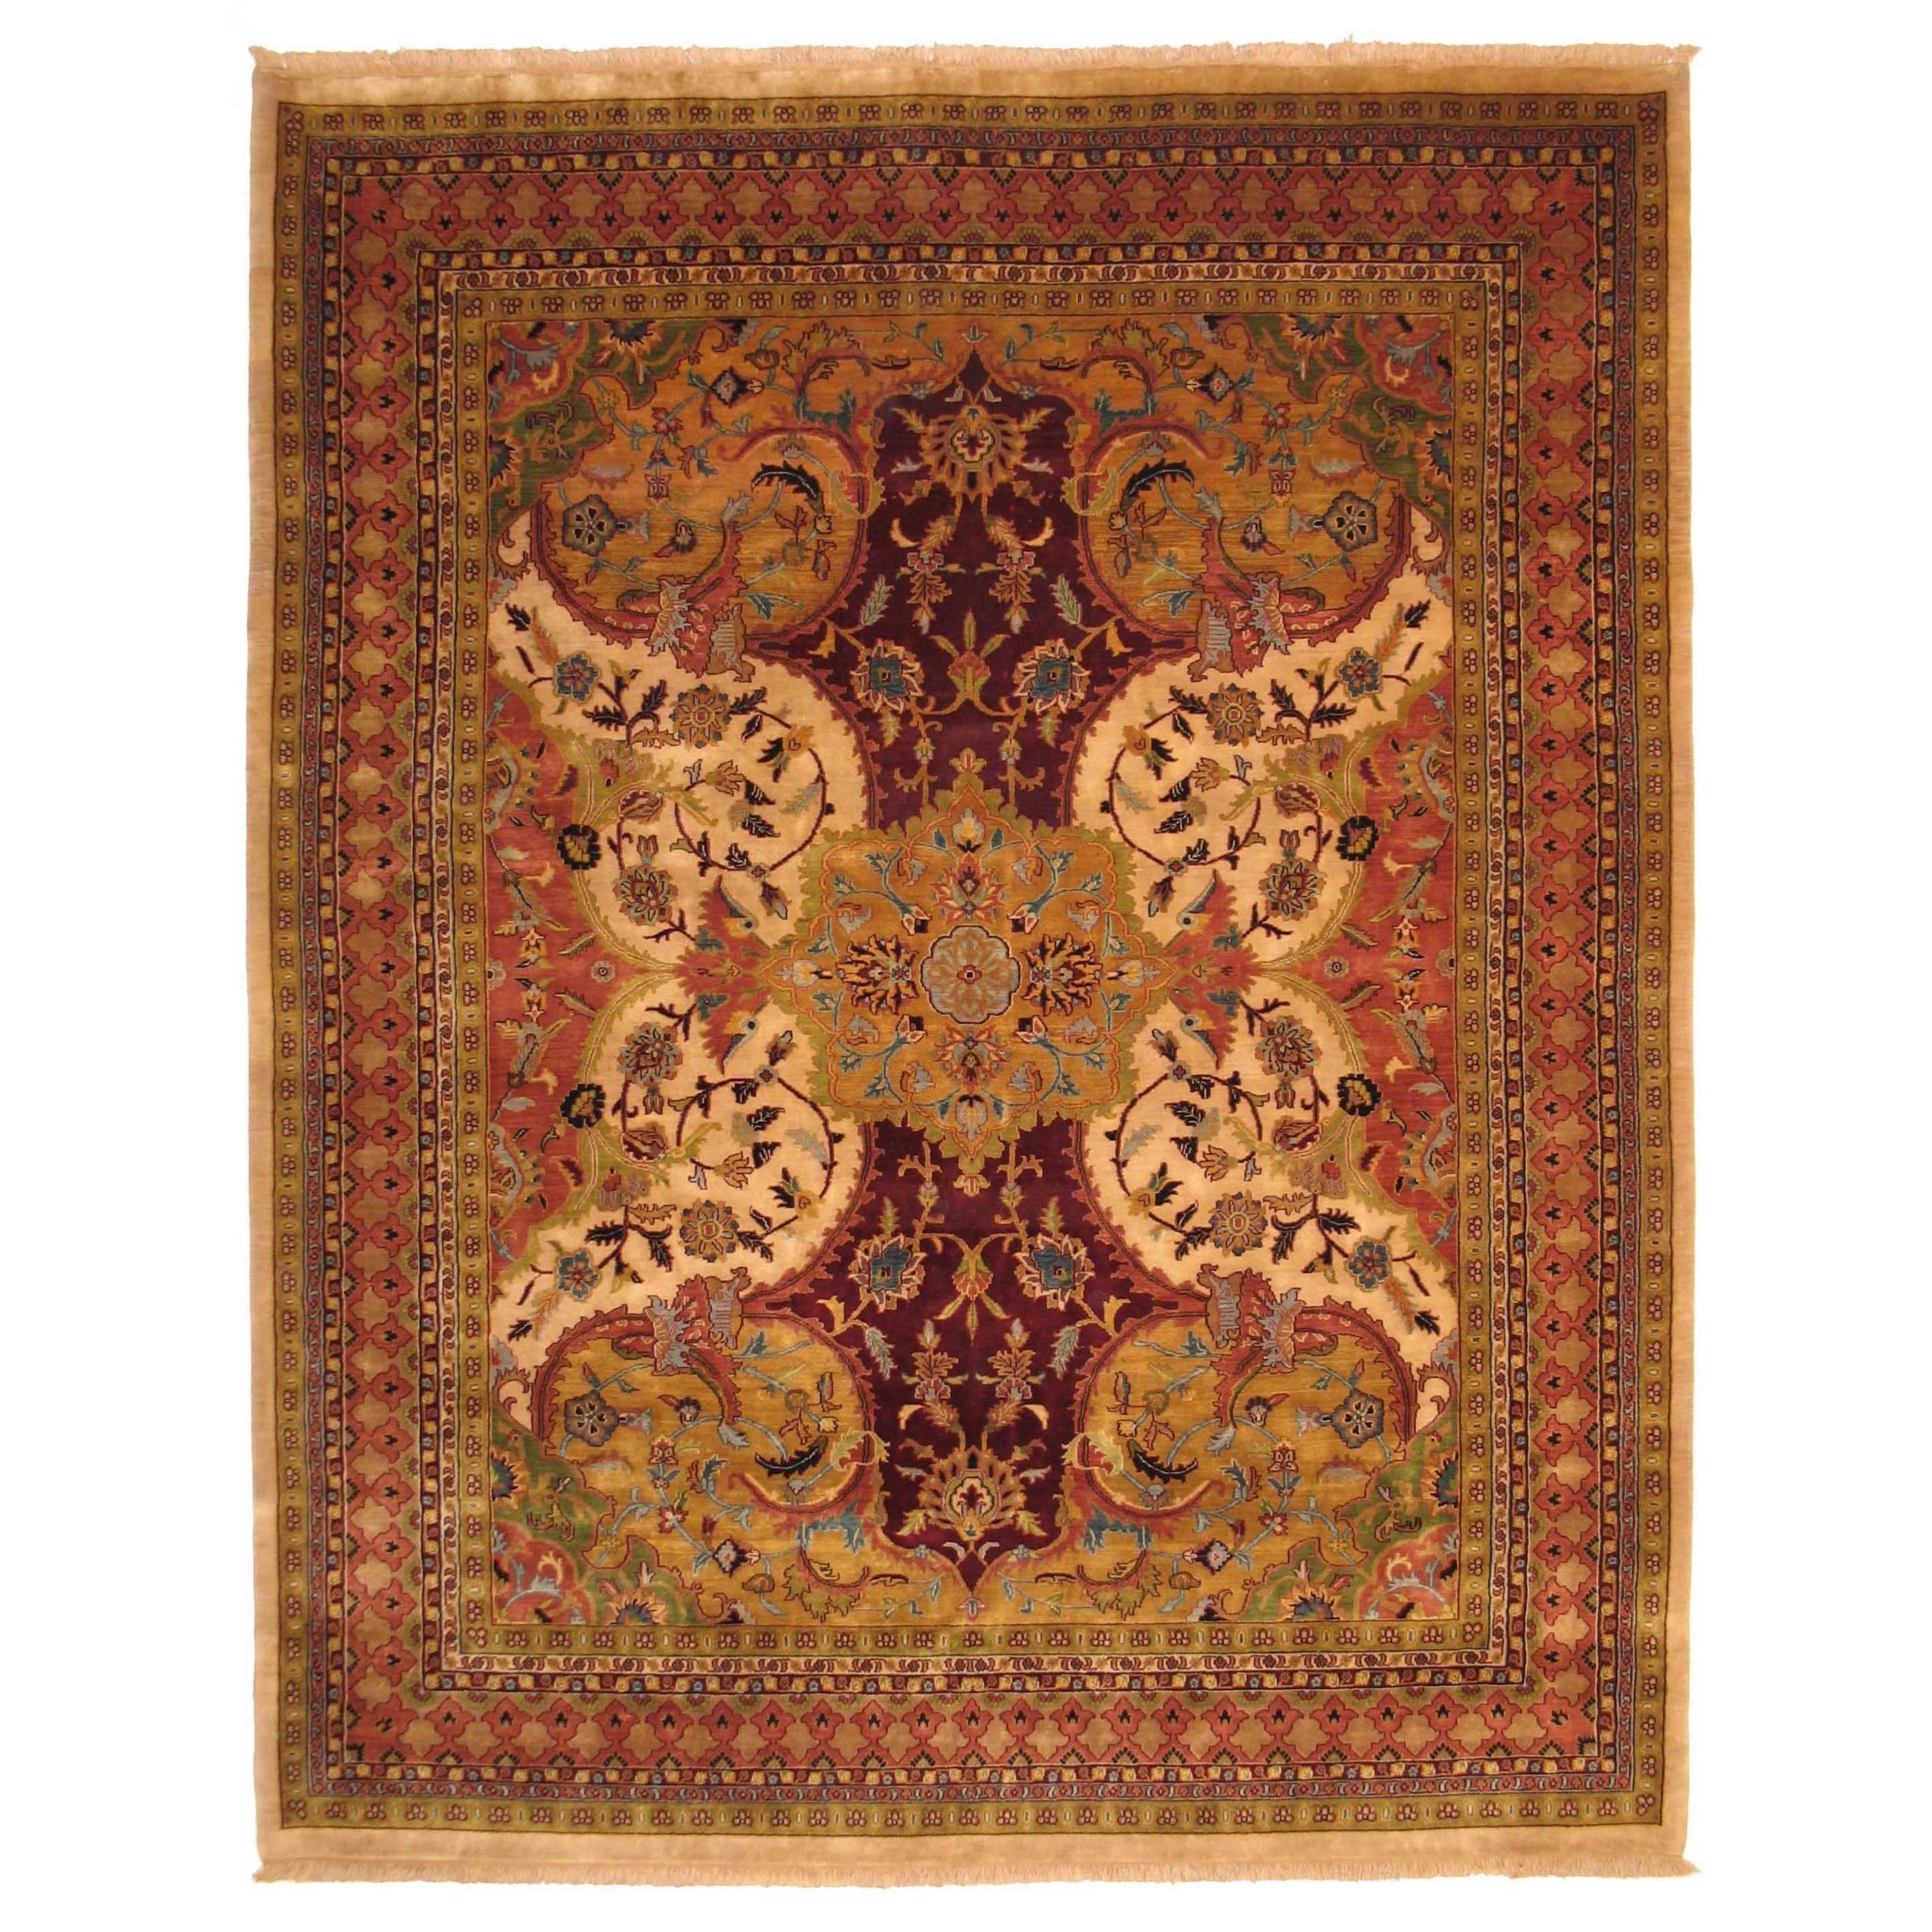 Kashan Hand Knotted Area Rug 10 0 X 14 8 10 X 14 8 Rugs On Carpet Area Rugs Wool Area Rugs